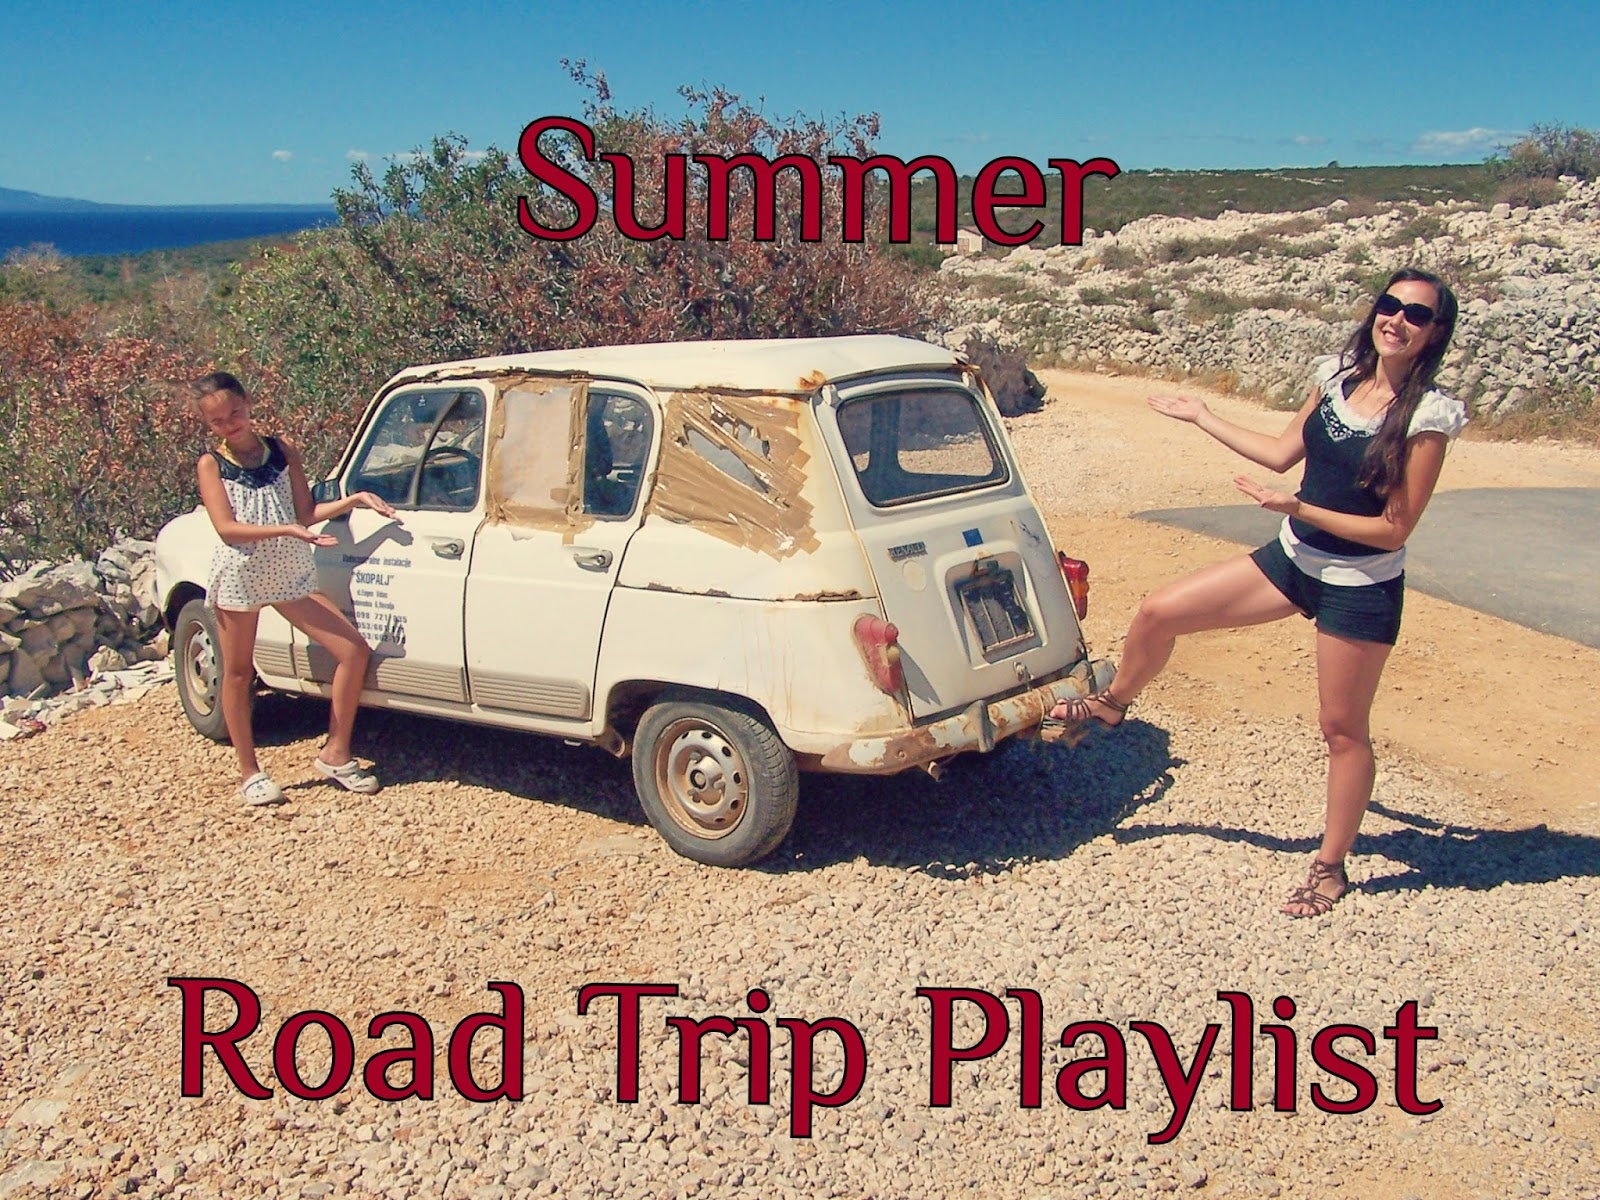 Summer road trip playlist